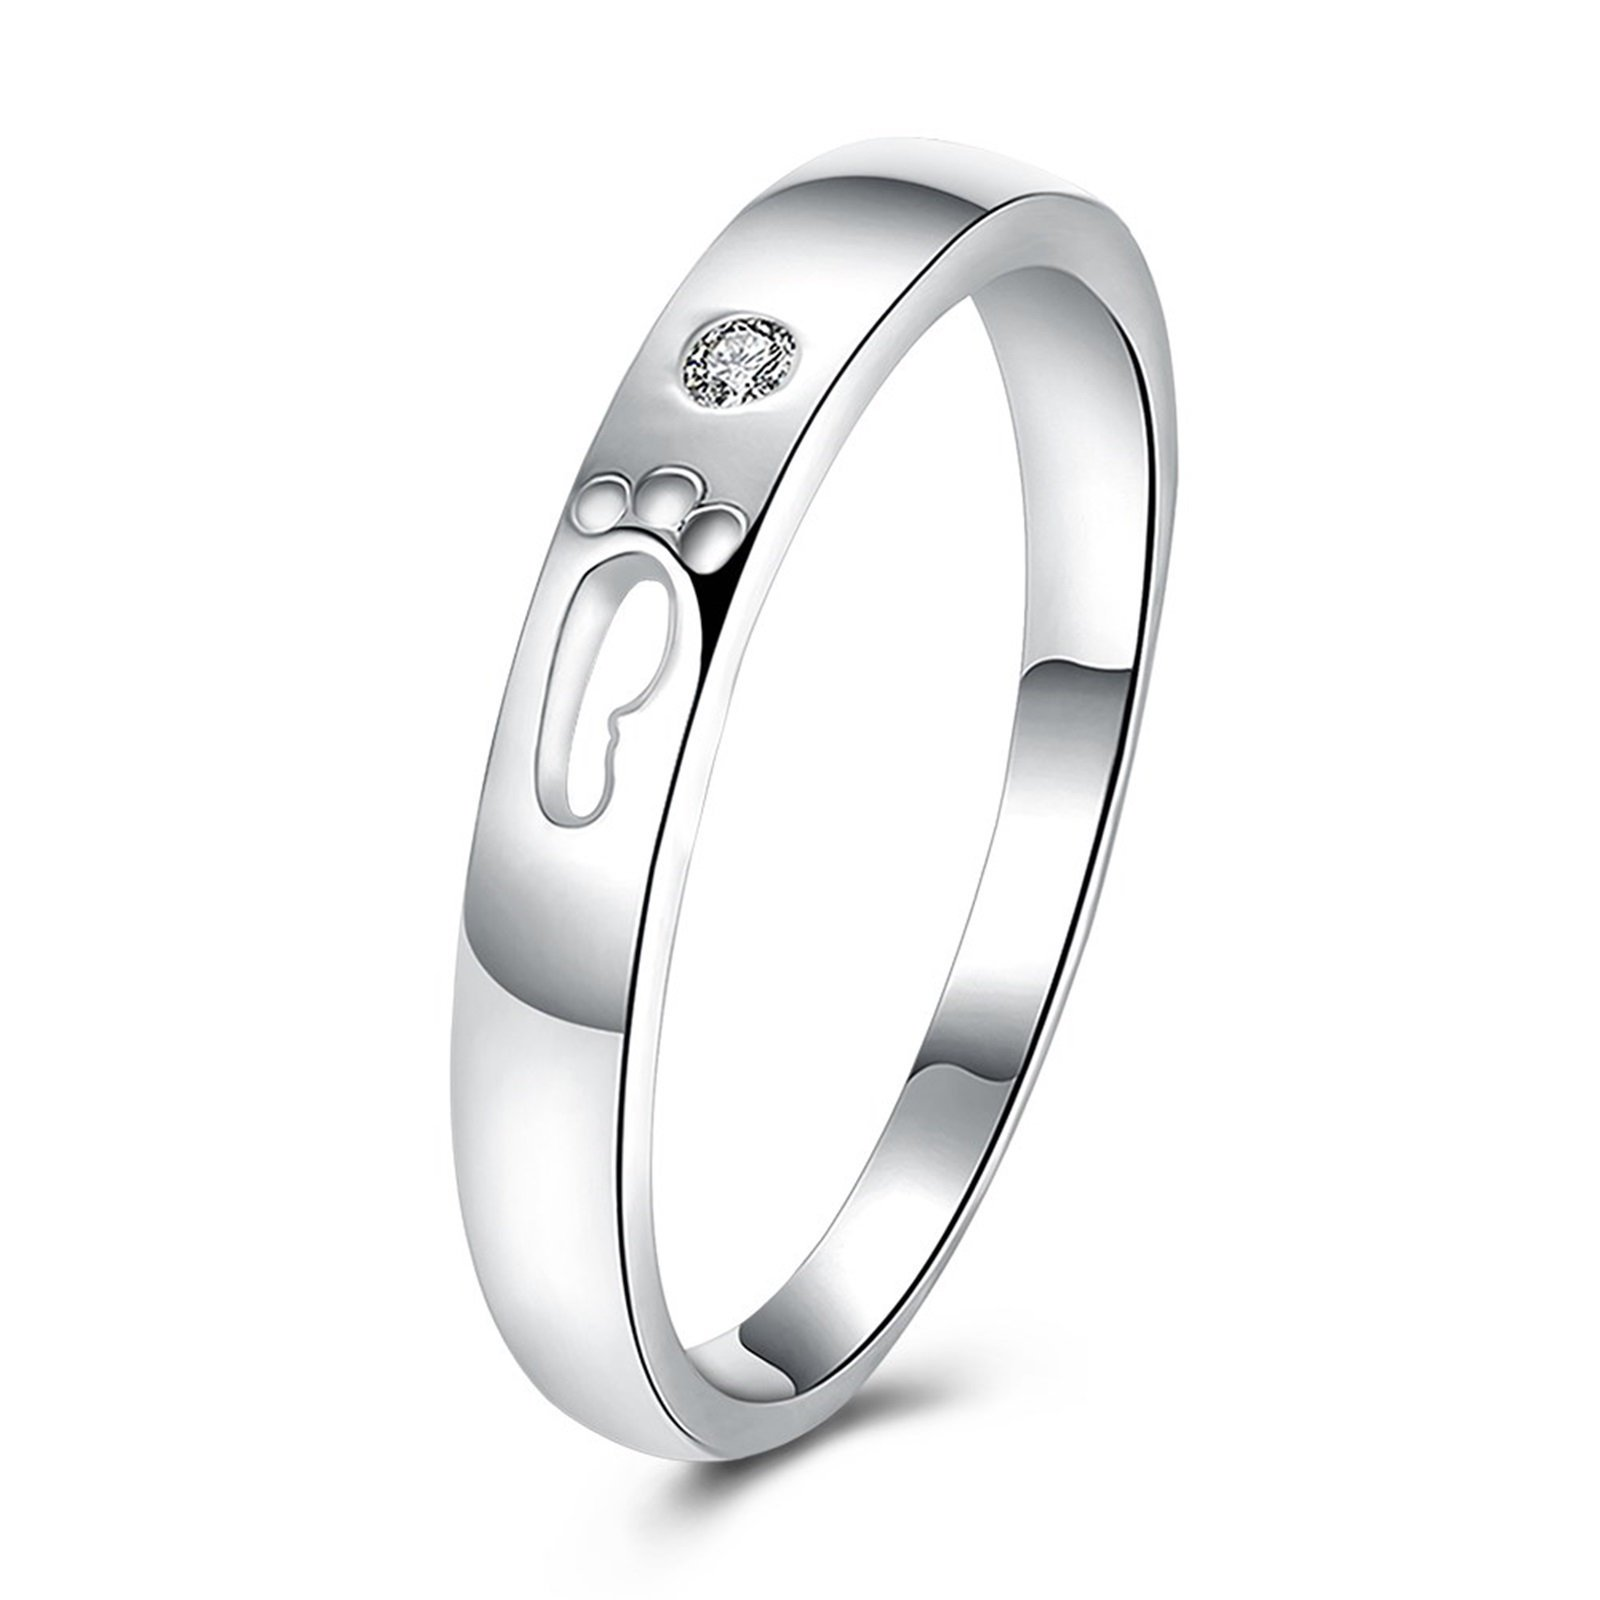 Epinki Women's Wedding Bands Silver Footprint Cubic Zirconia Ring Size 7 Men Accessories